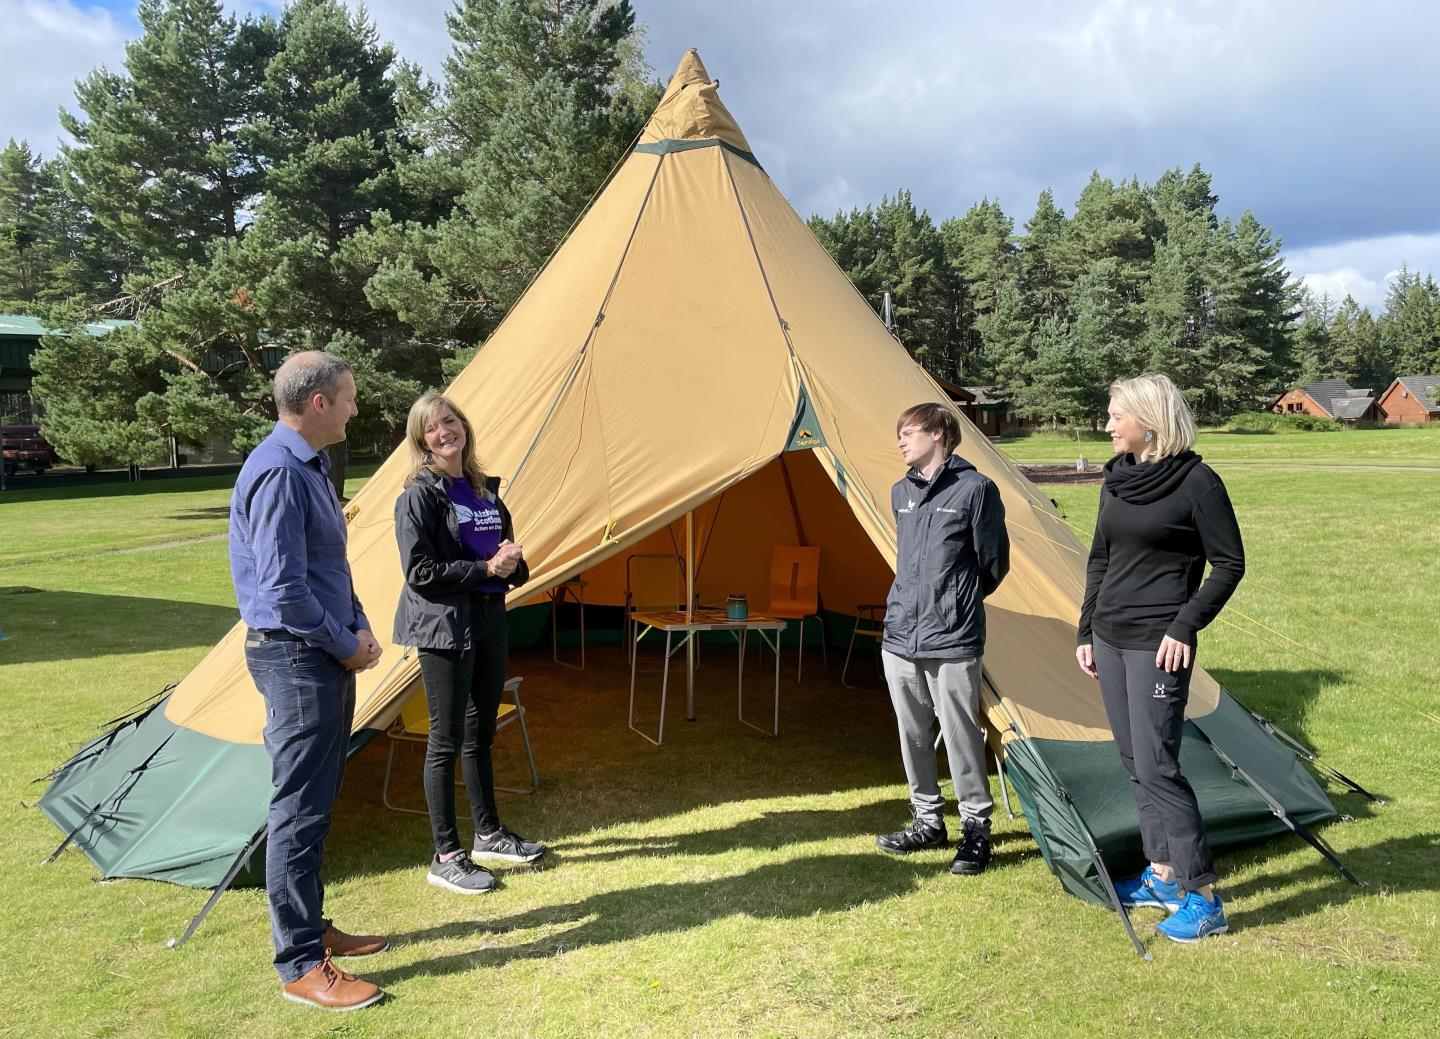 Cabinet Secretary Michael Matheson MSP, Gillian Council (Alzheimer Scotland), Xander McDade (Chair CNPA Board) and Caroline Clark (NLHF Director Scotland) standing at the tipi used for nature sessions with dementia patients.